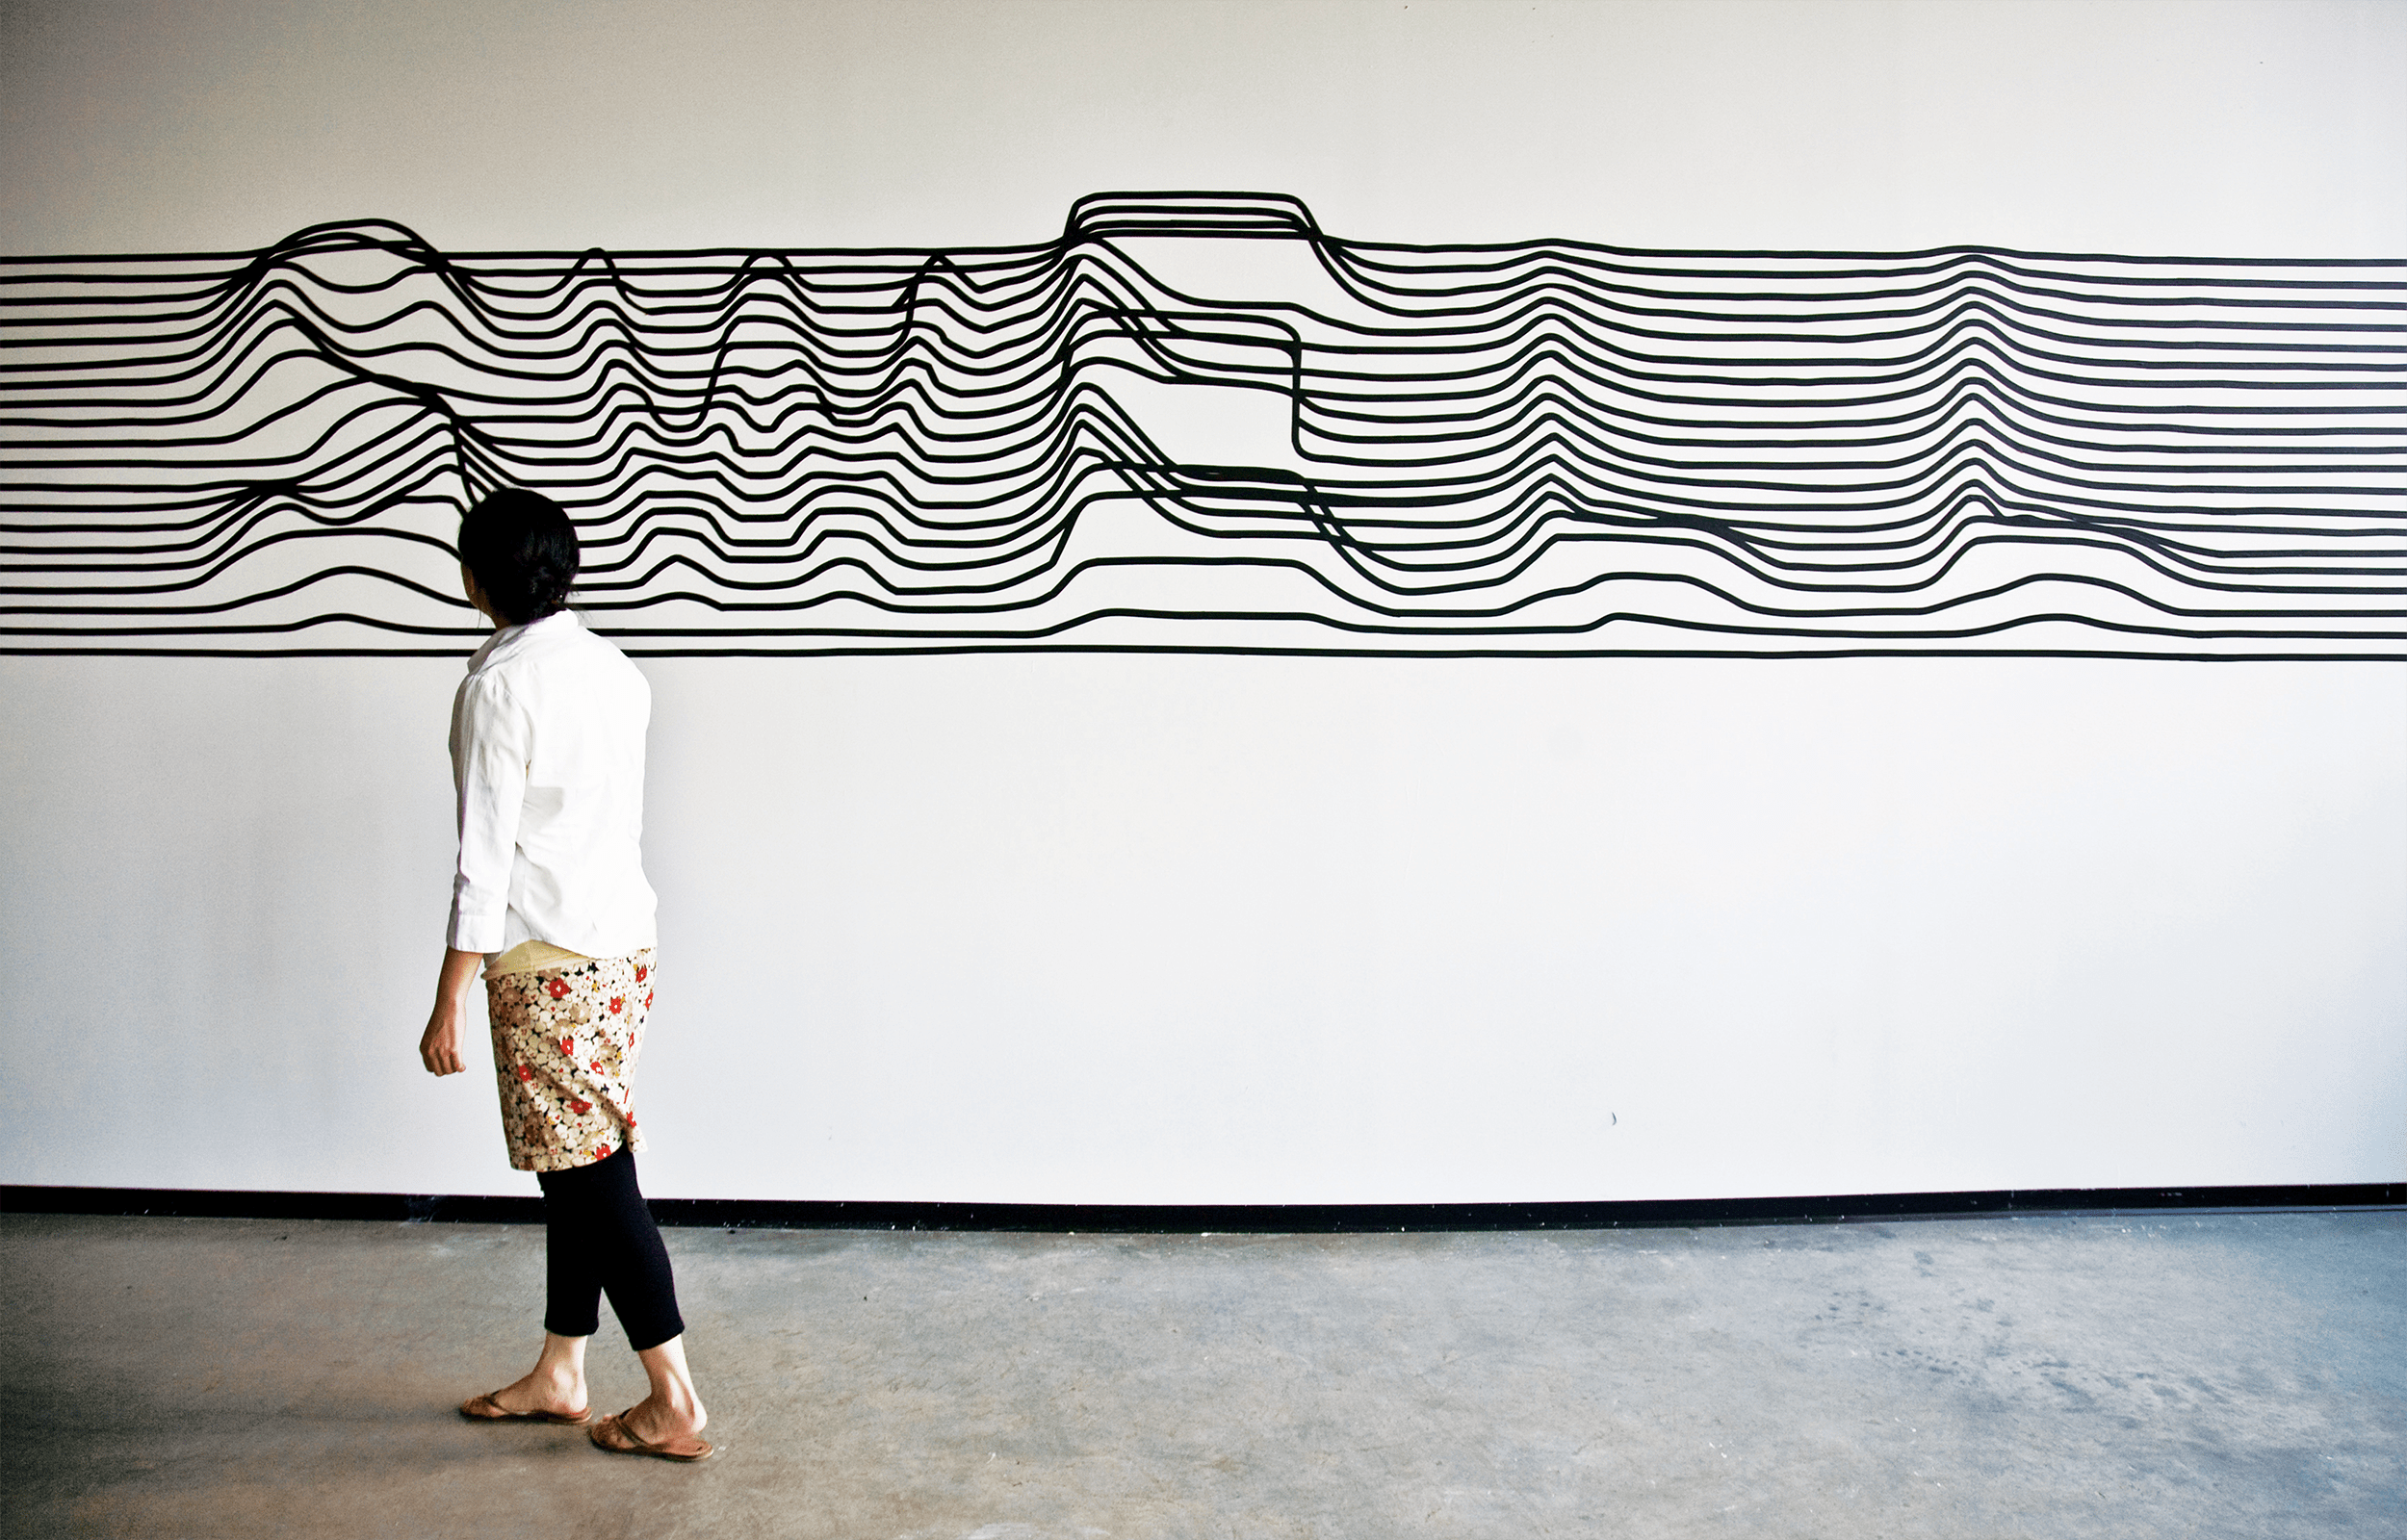 Exhibition view of Swell by Synoptic Office